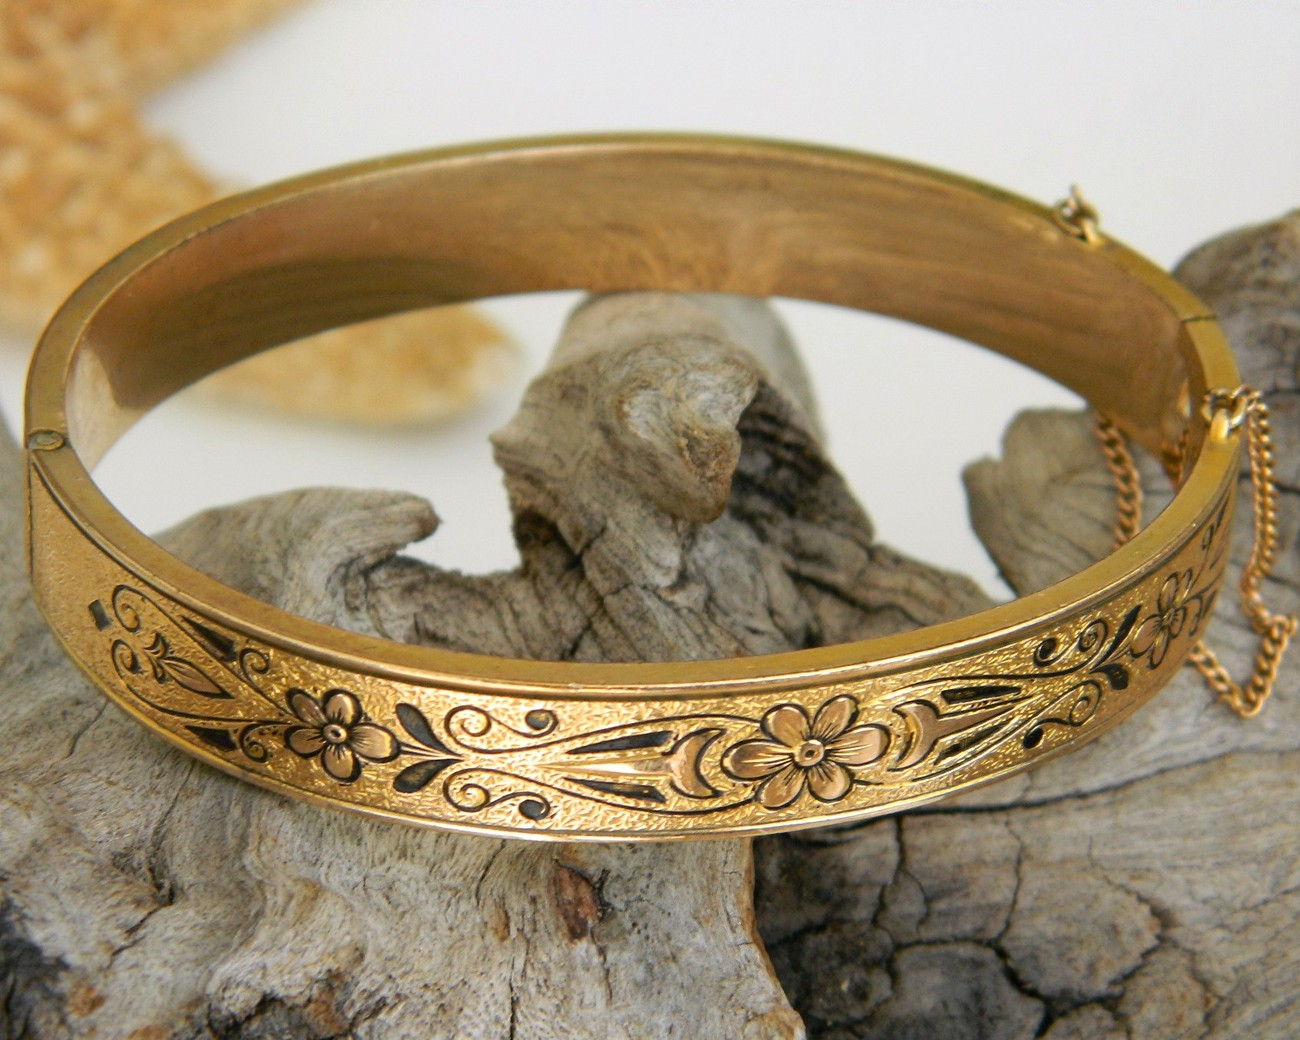 Vintage_bangle_bracelet_gold_filled_10k